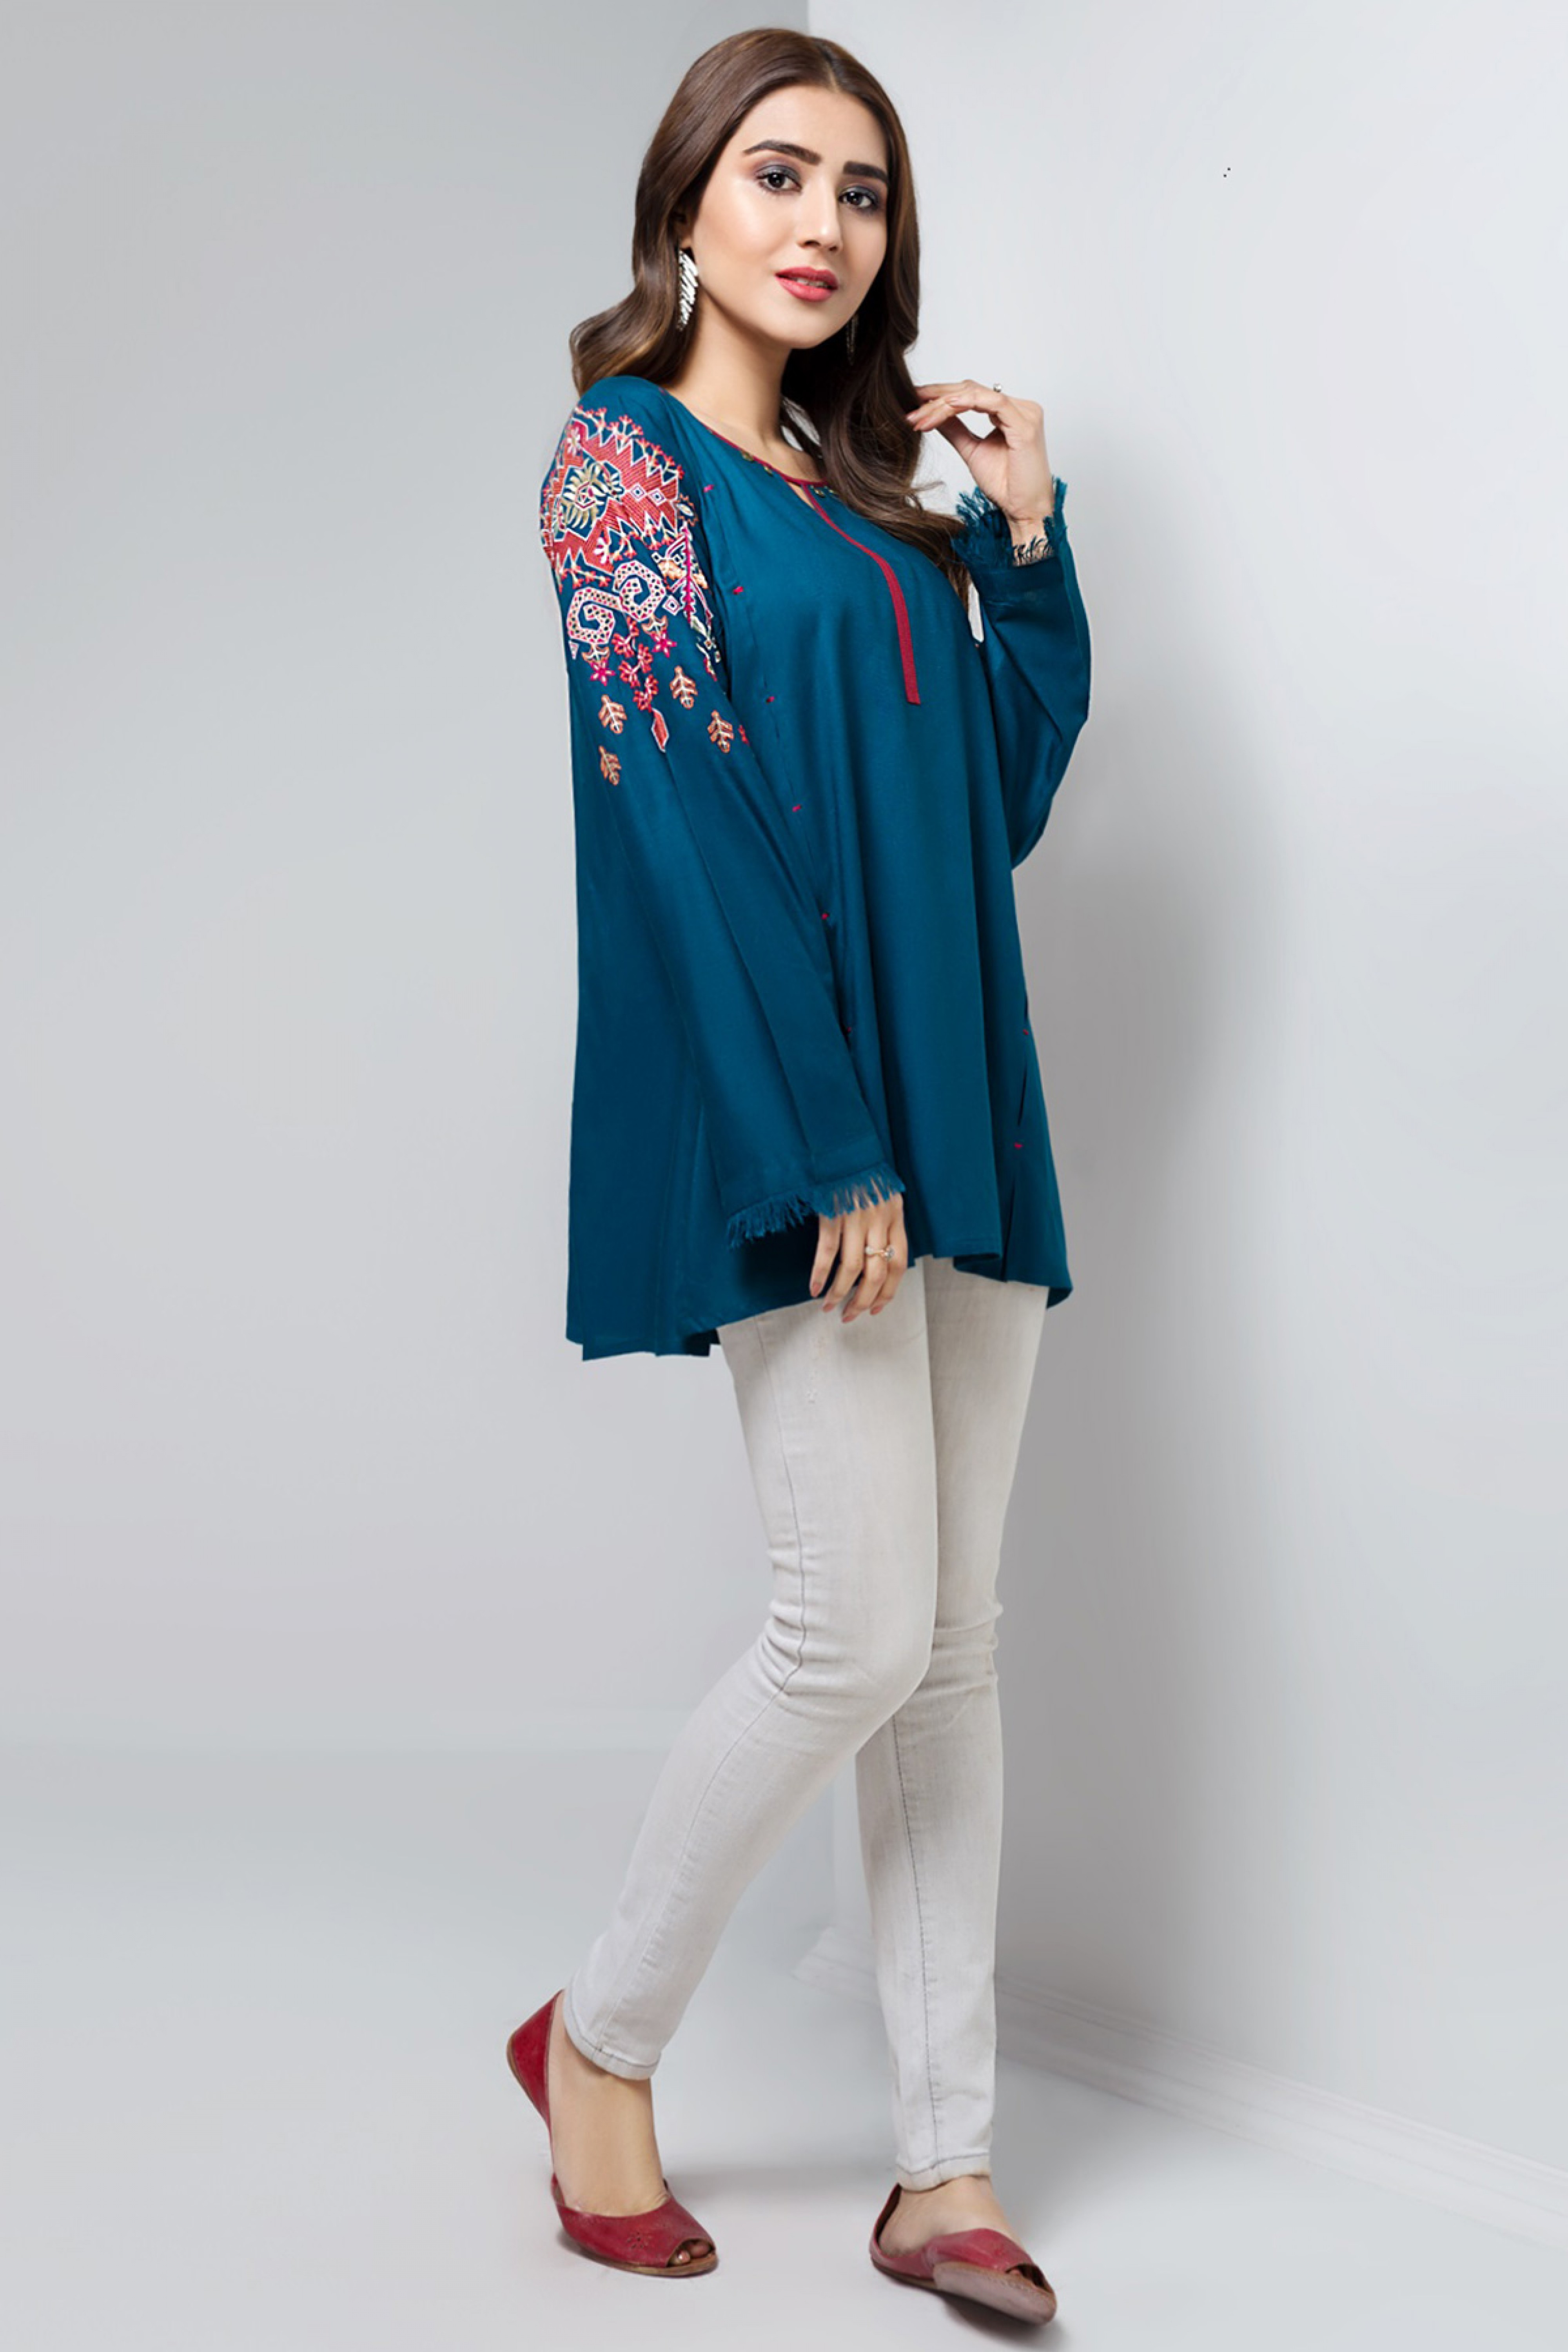 IRIS PUNCH(Embroidered Top)